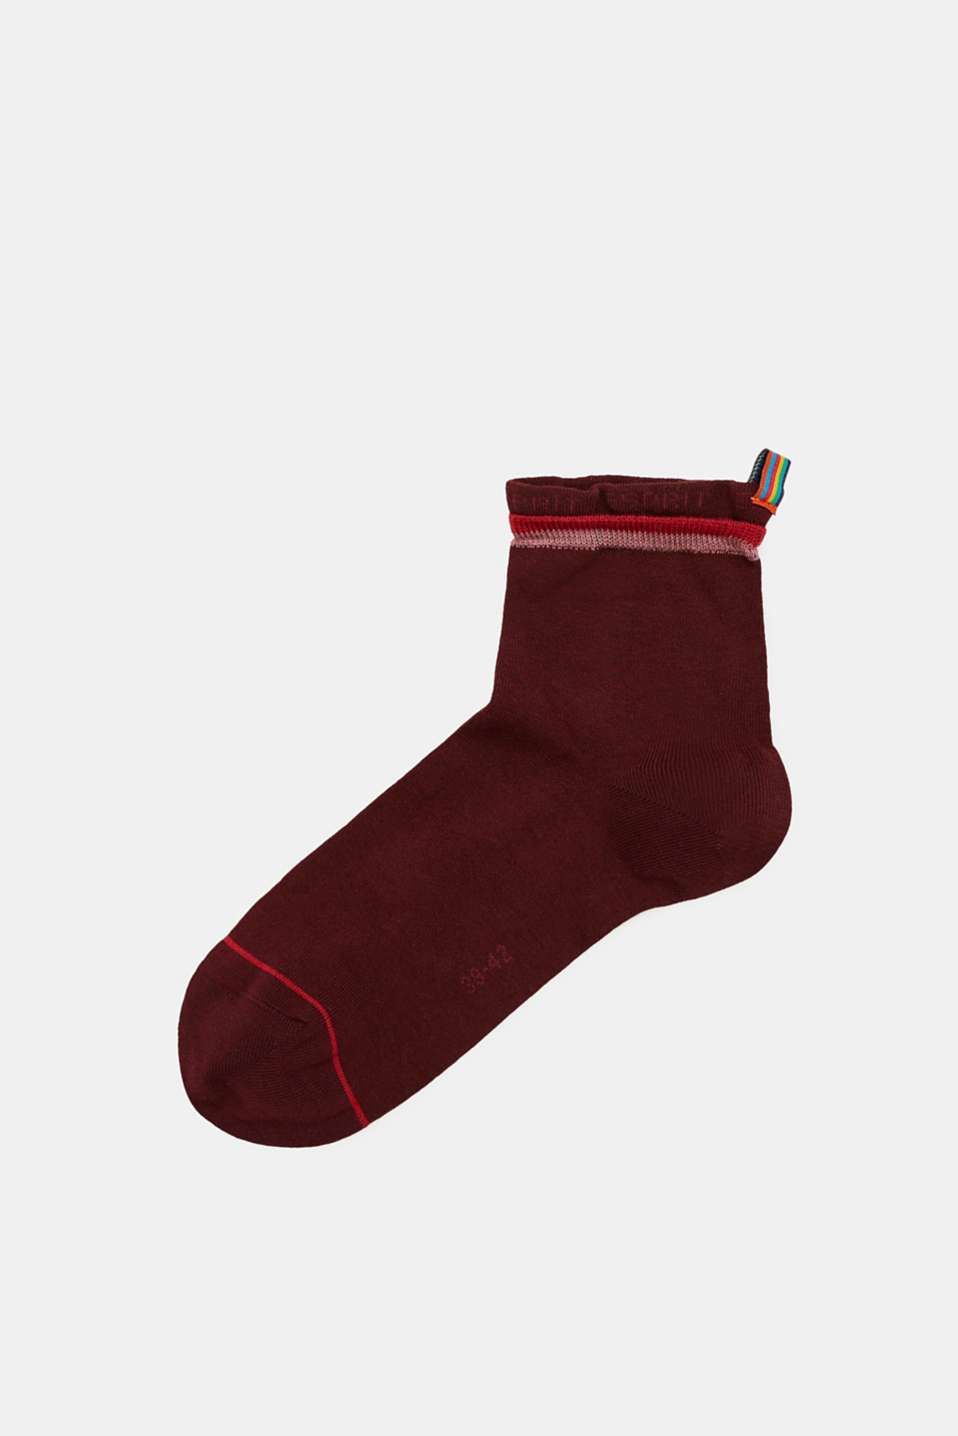 Esprit - Socks with logo intarsia, made of blended cotton